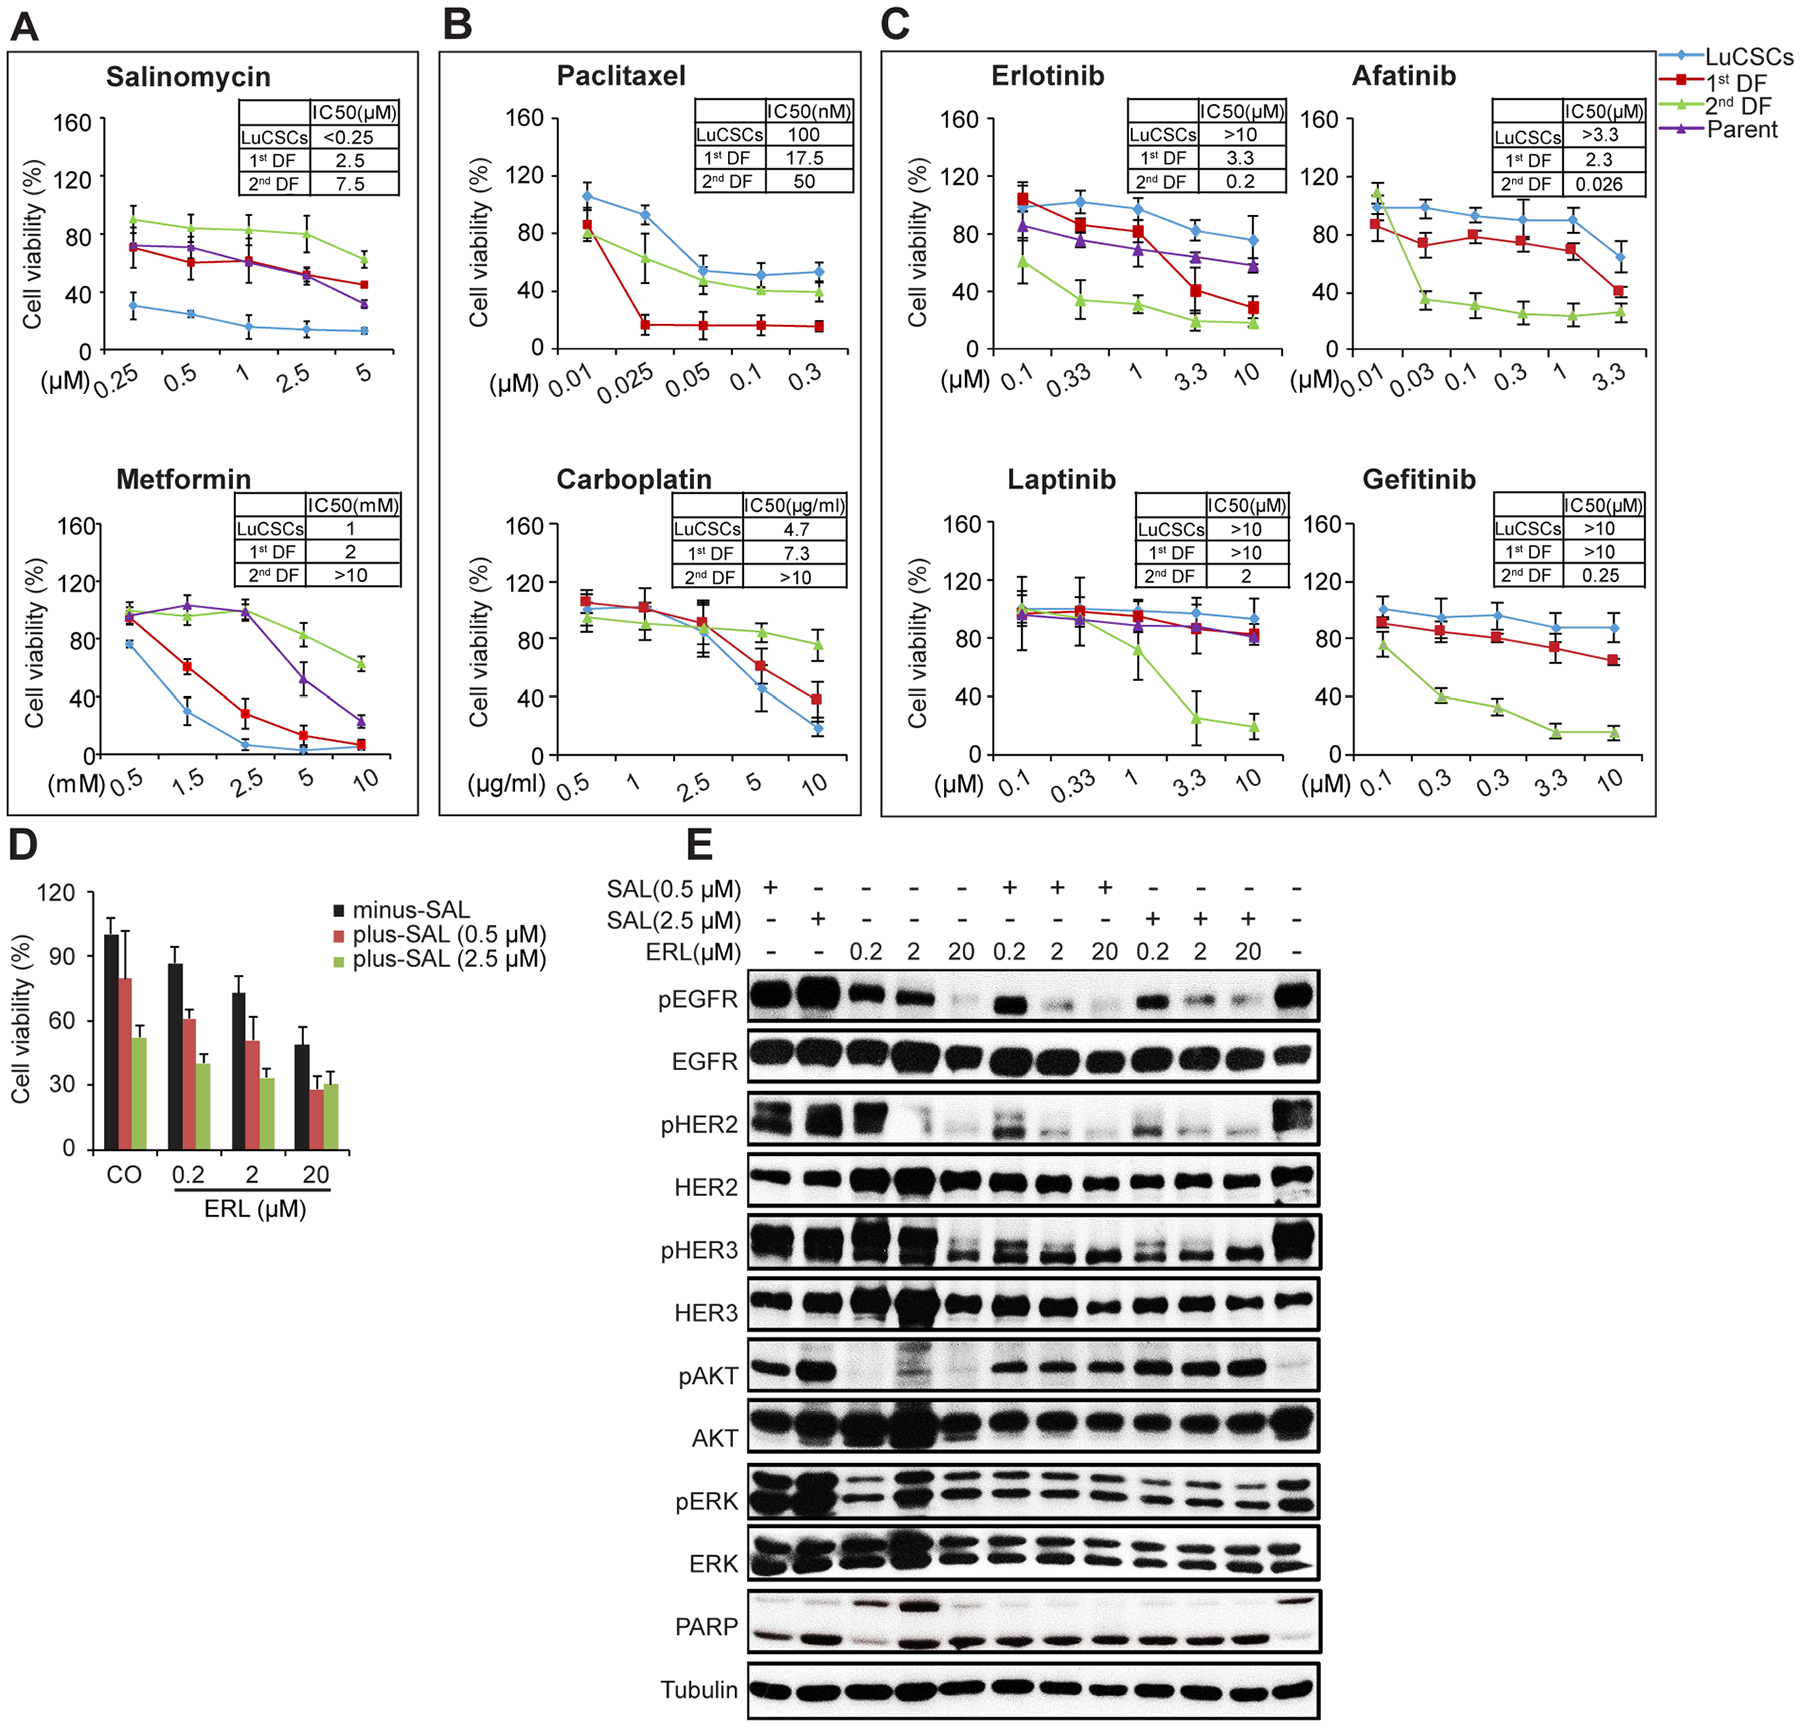 Sensitivity of LuCSCs and their progeny cells to cytotoxic drugs, EGFR-TKIs, Metformin and Salinomycin.